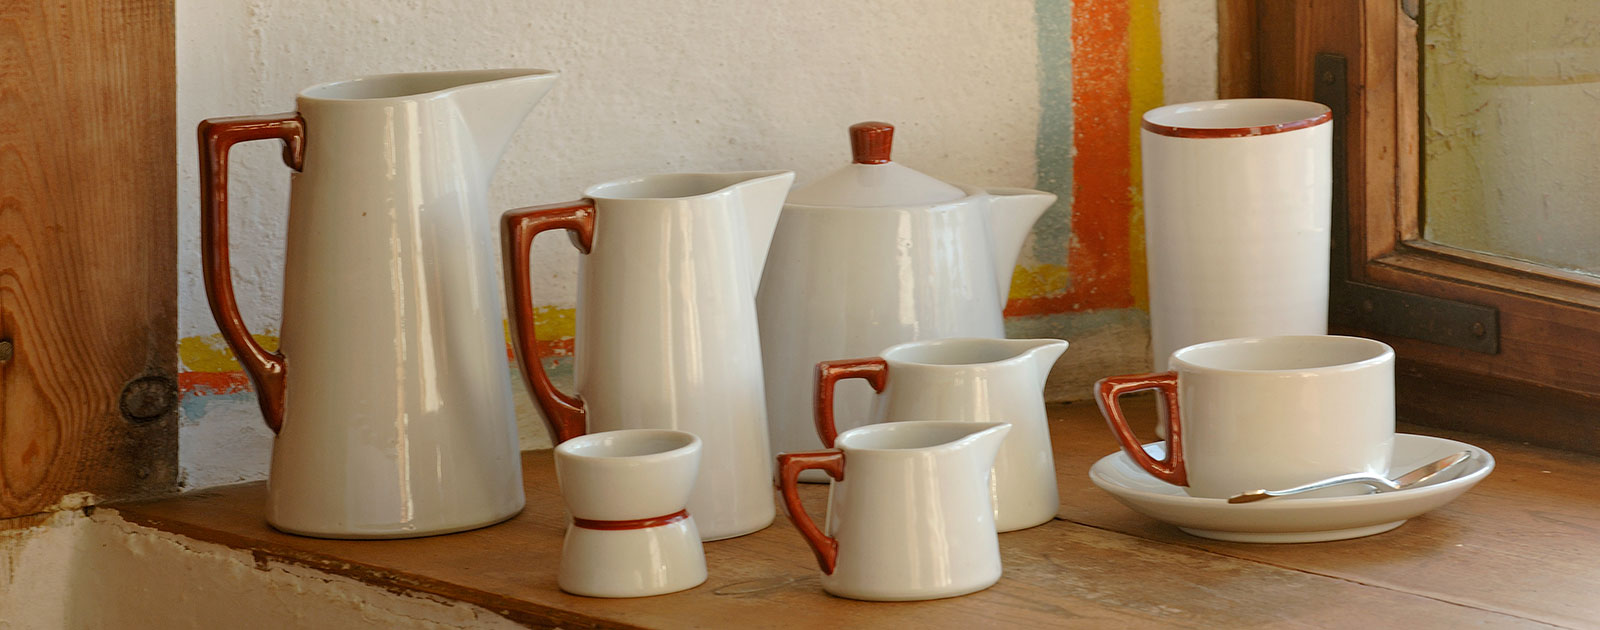 Set of antique teapots and milk jars with one cup